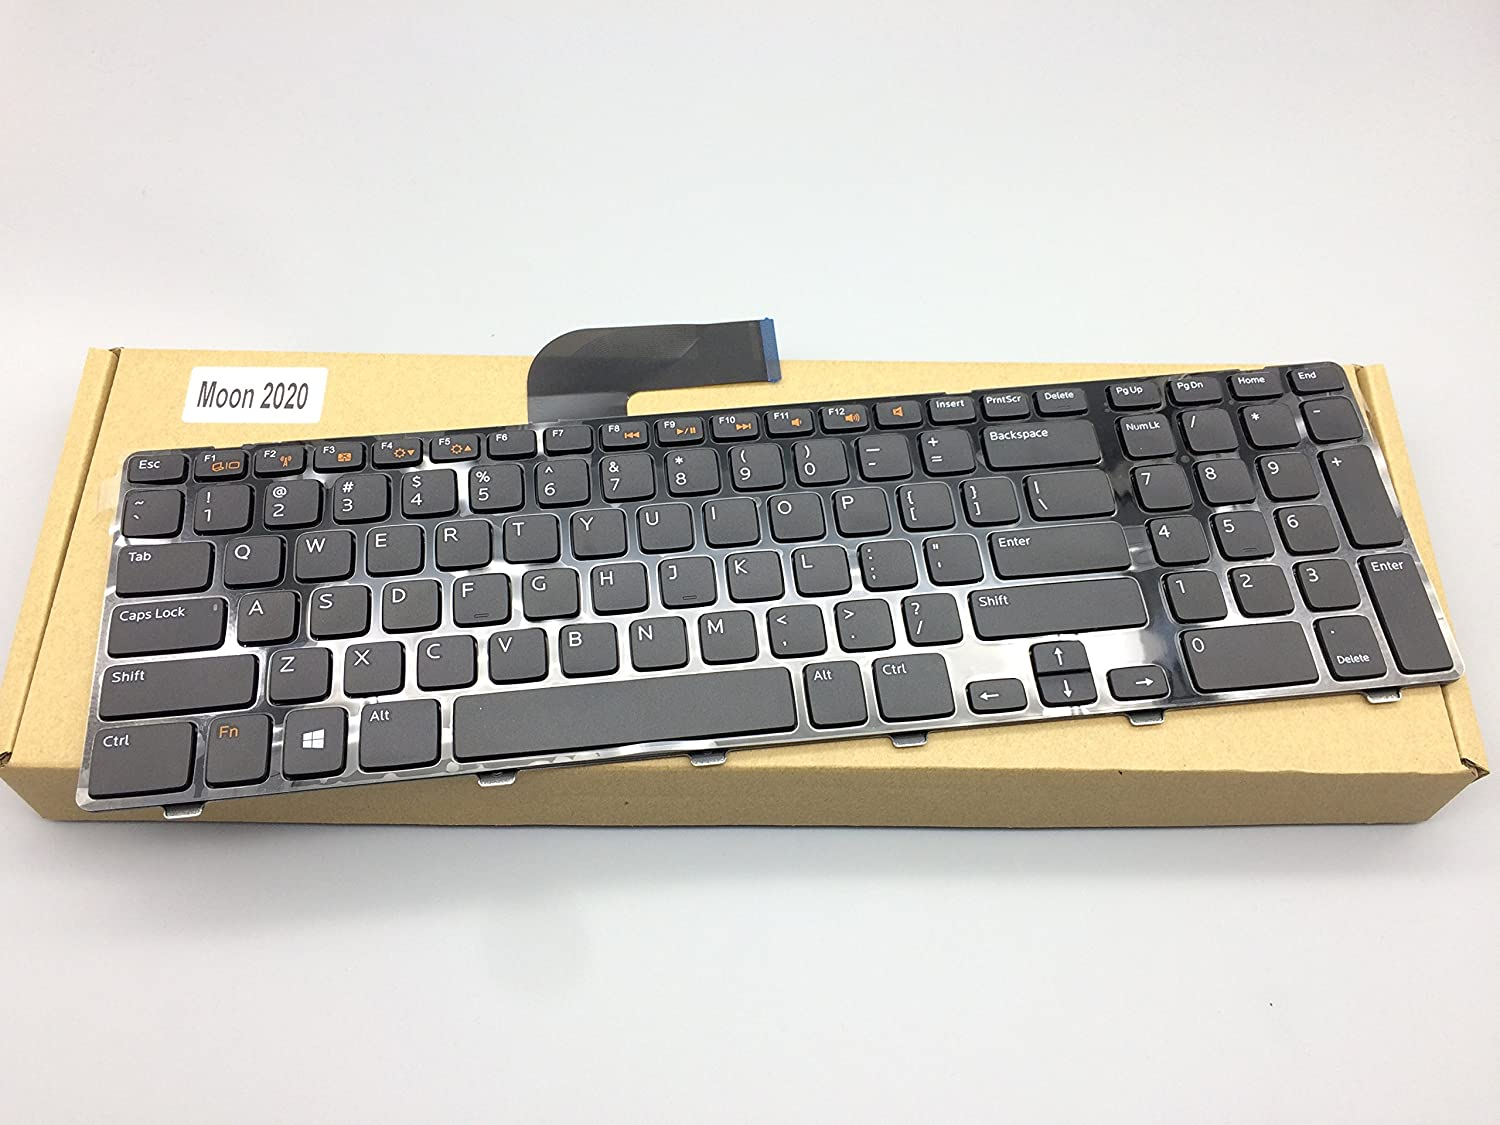 Replacement Keyboard for Dell Inspiron 17R N7110 5720 7720 / Vostro 3750 / XPS 17 L702X Laptop No Backlight DP/N: 0454RX 08XN0P 09GTY3